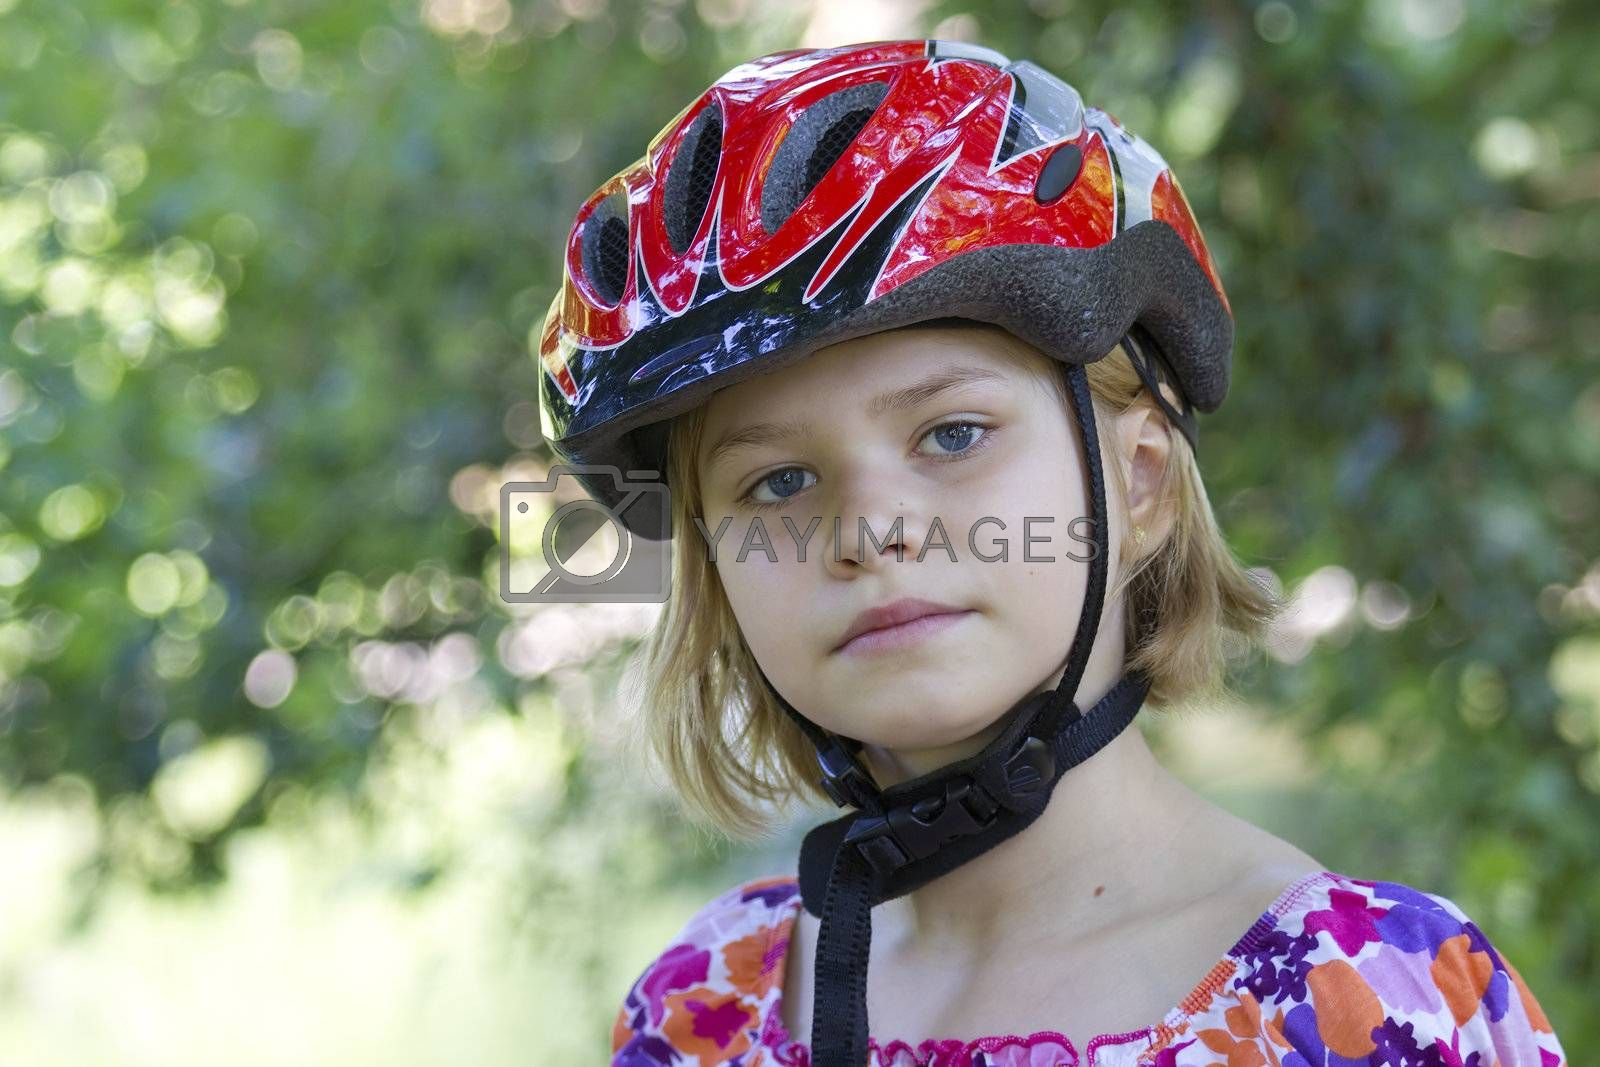 girl wearing a bike helmet